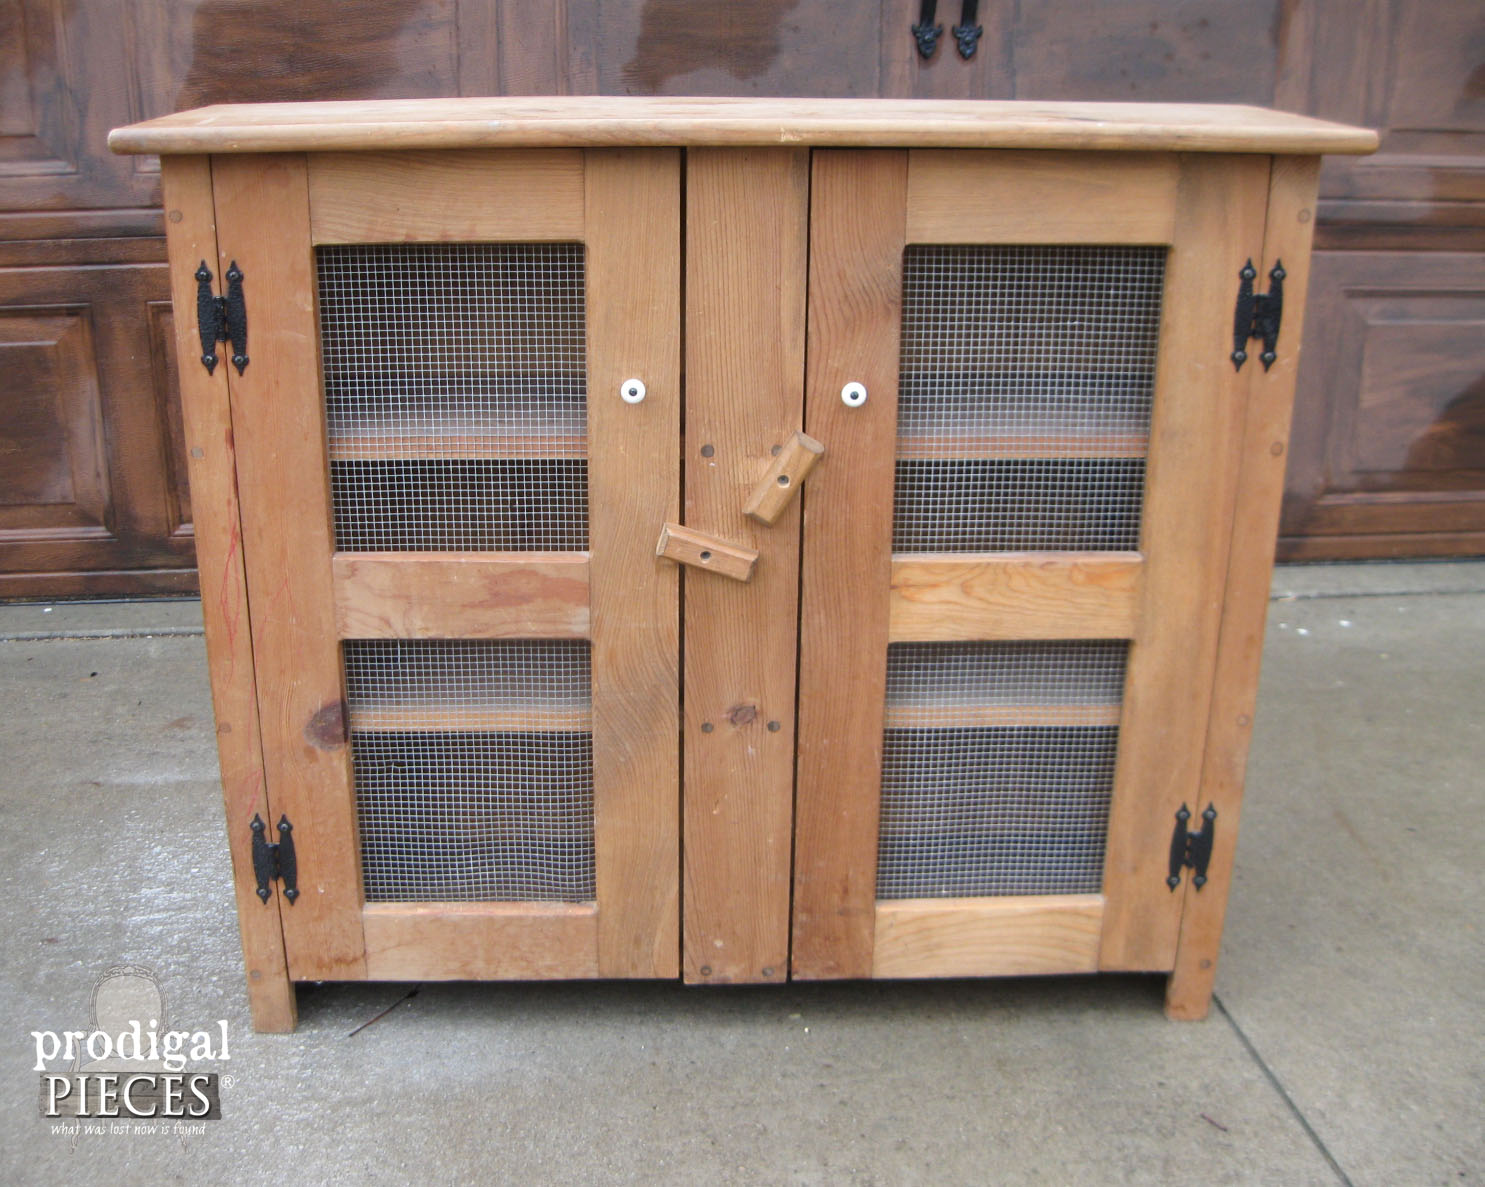 Primitive Chicken Wire Cupboard Before Update | Prodigal Pieces | www.prodigalpieces.com